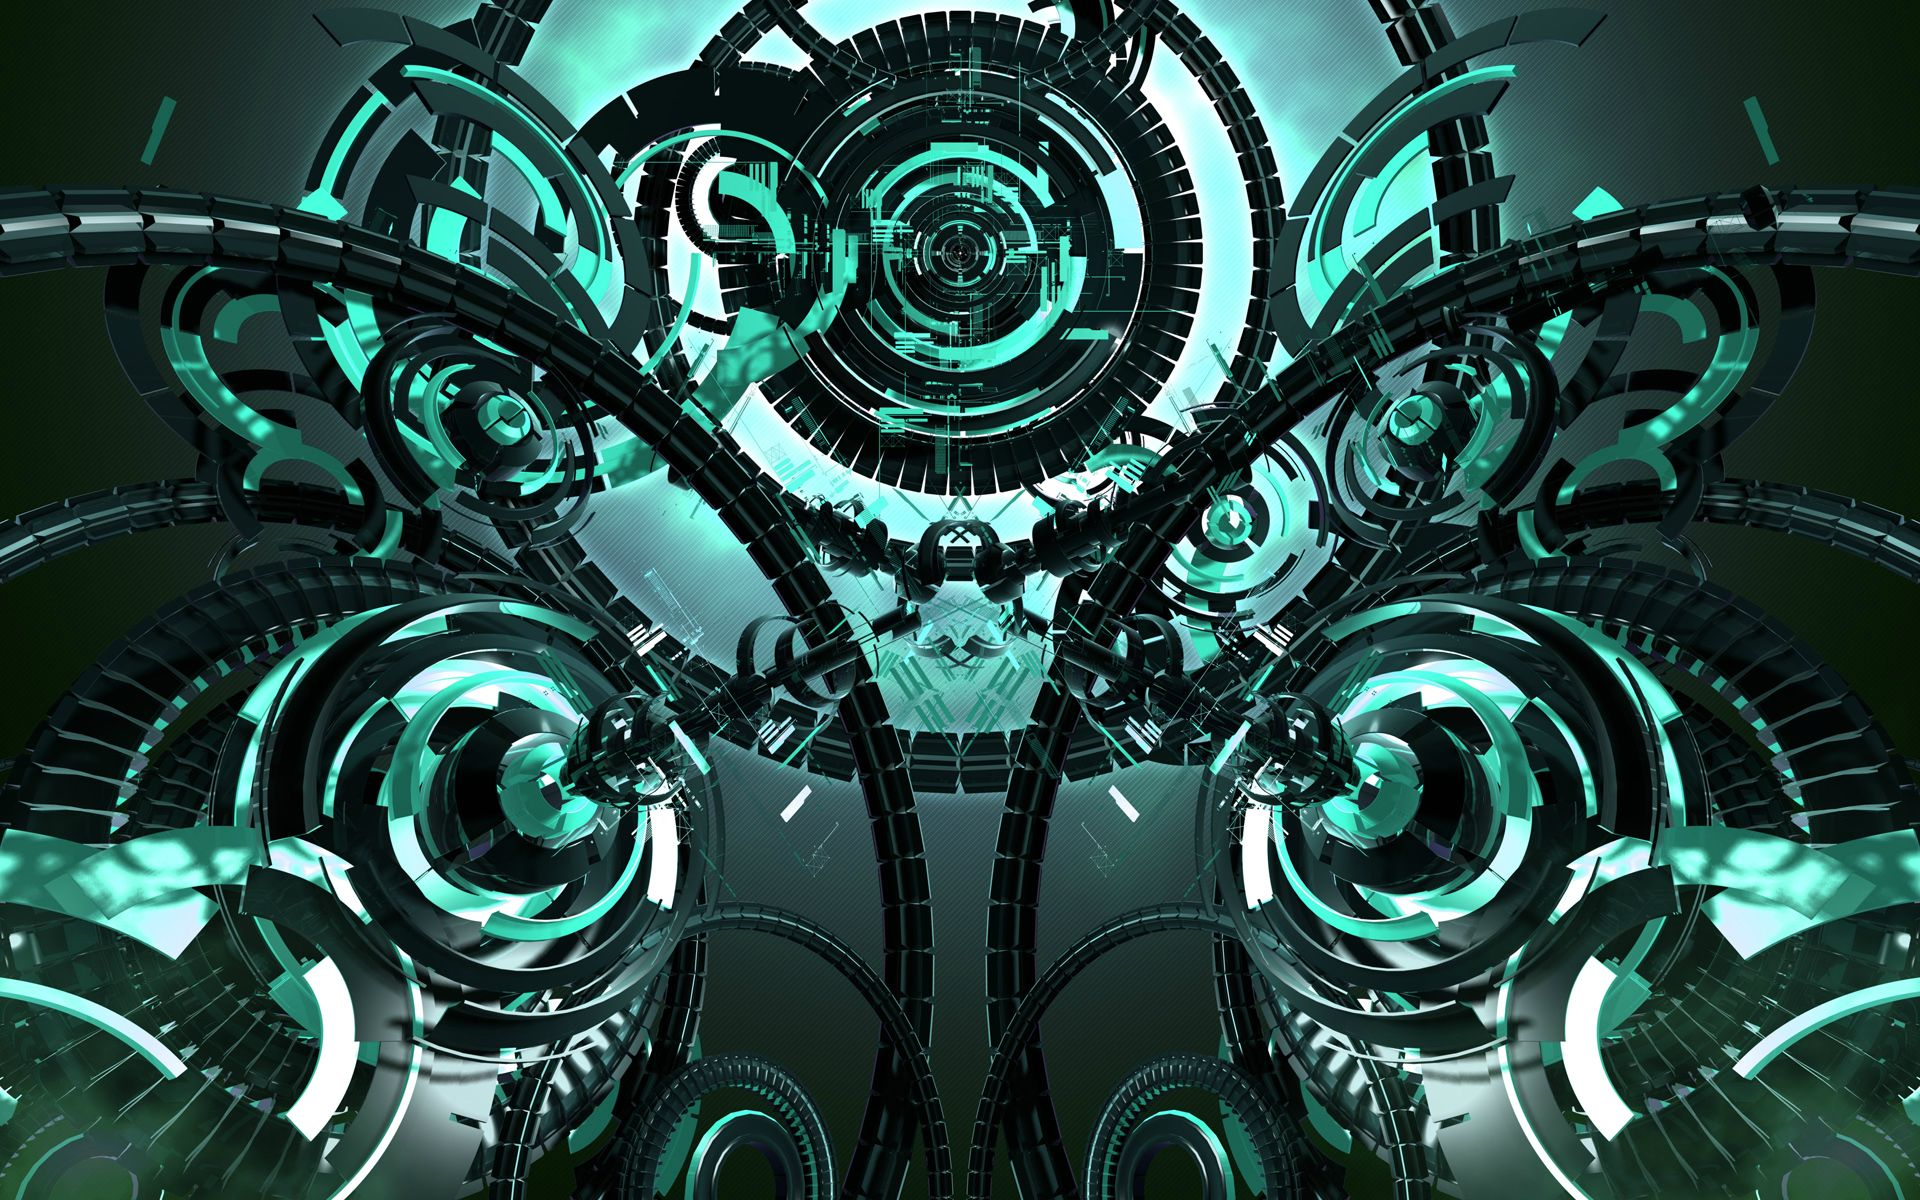 Awesome Music Abstract Wallpapers Images amp Pictures   Becuo 1920x1200